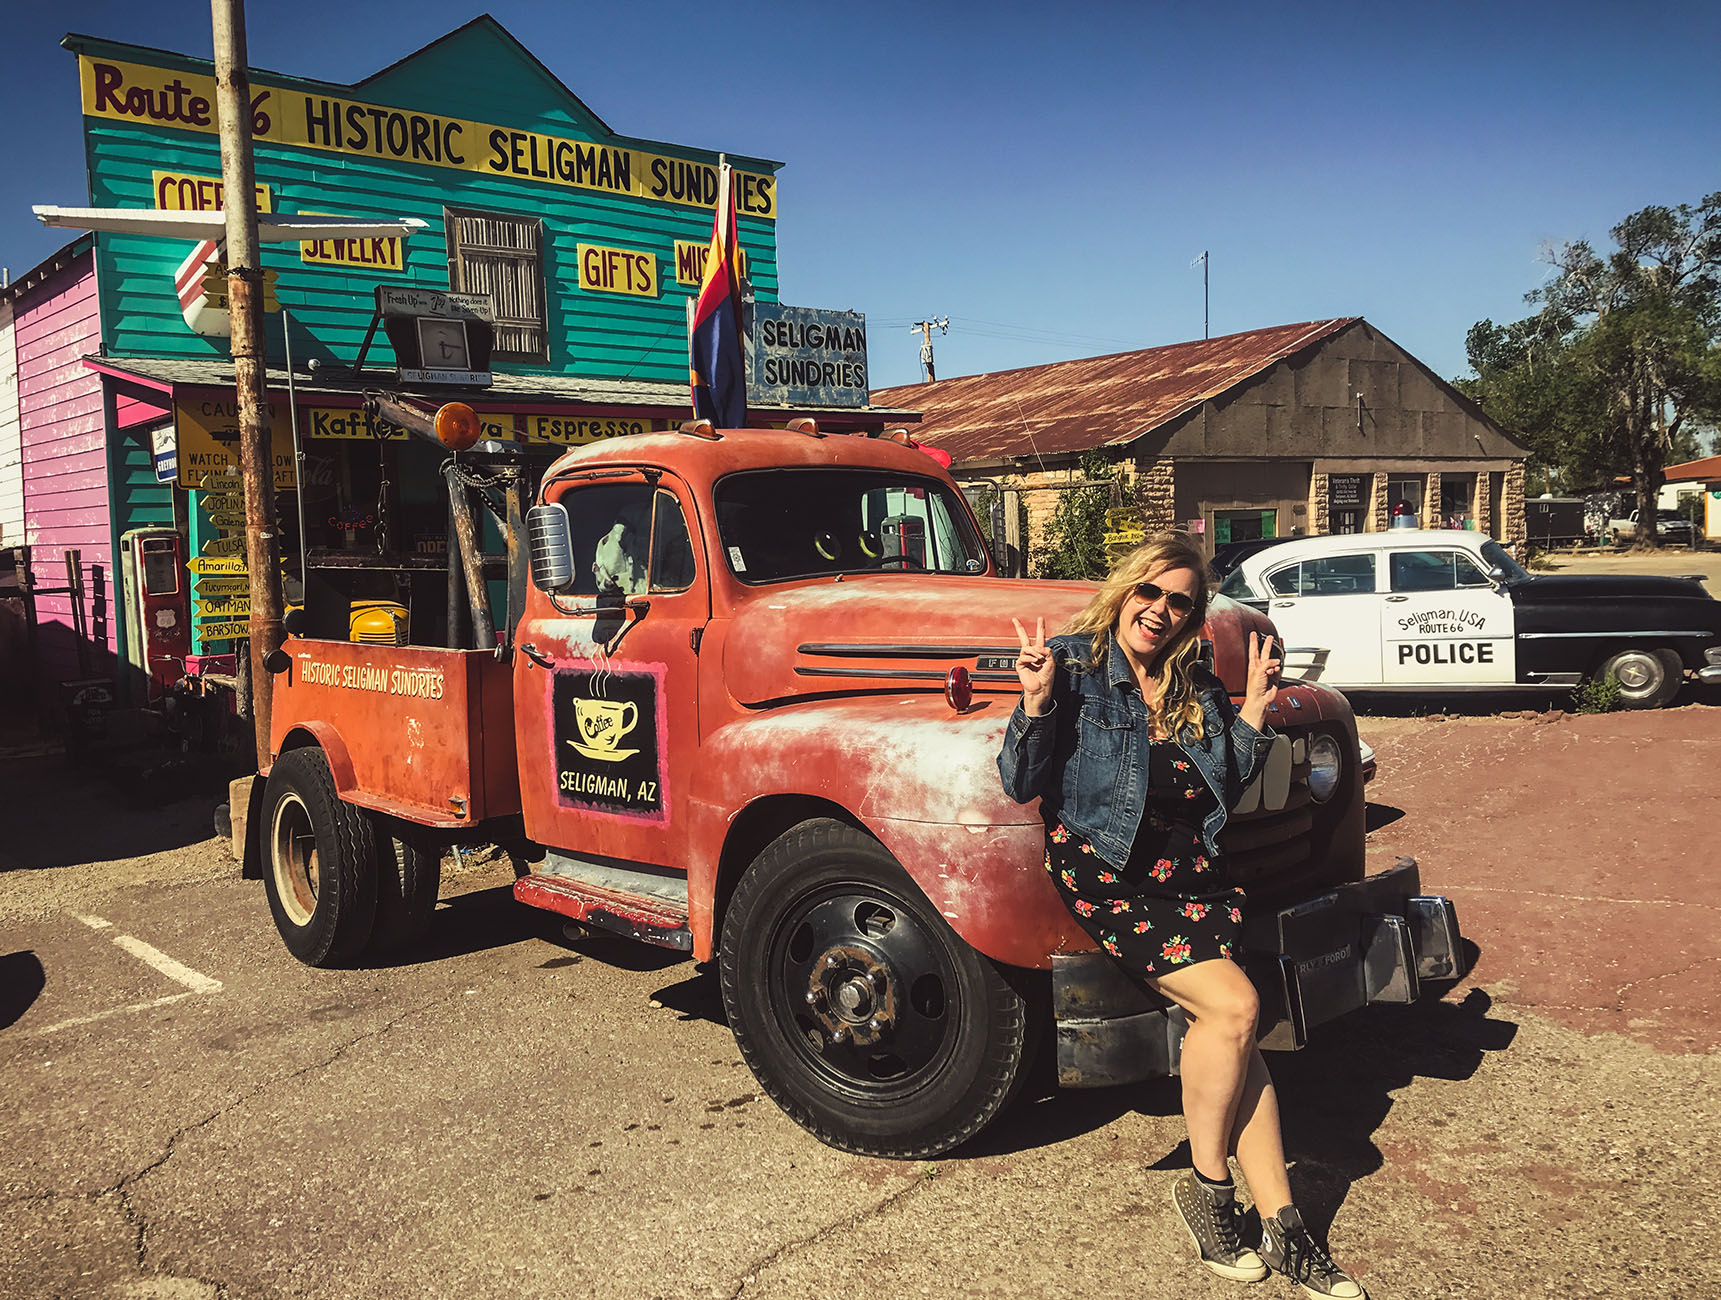 Seligman Arizona Route 66 Road trip USA